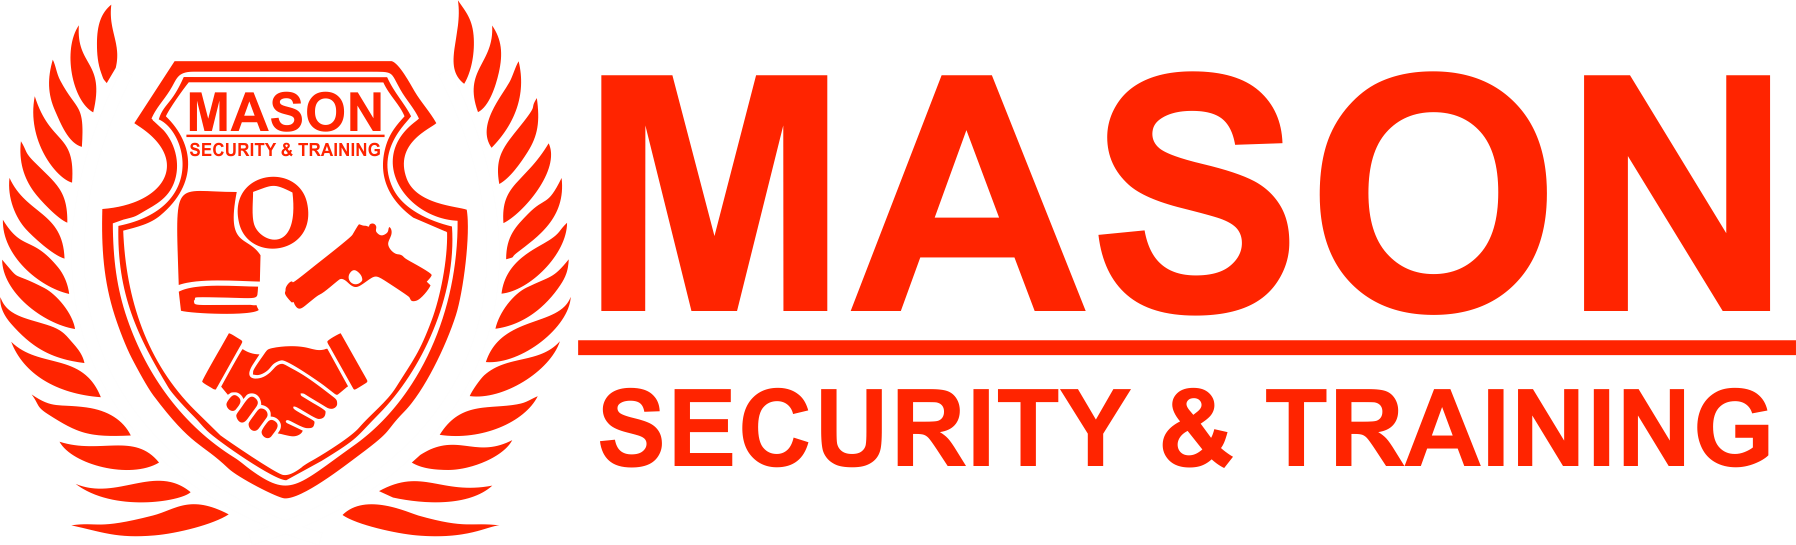 Mason Security & Training